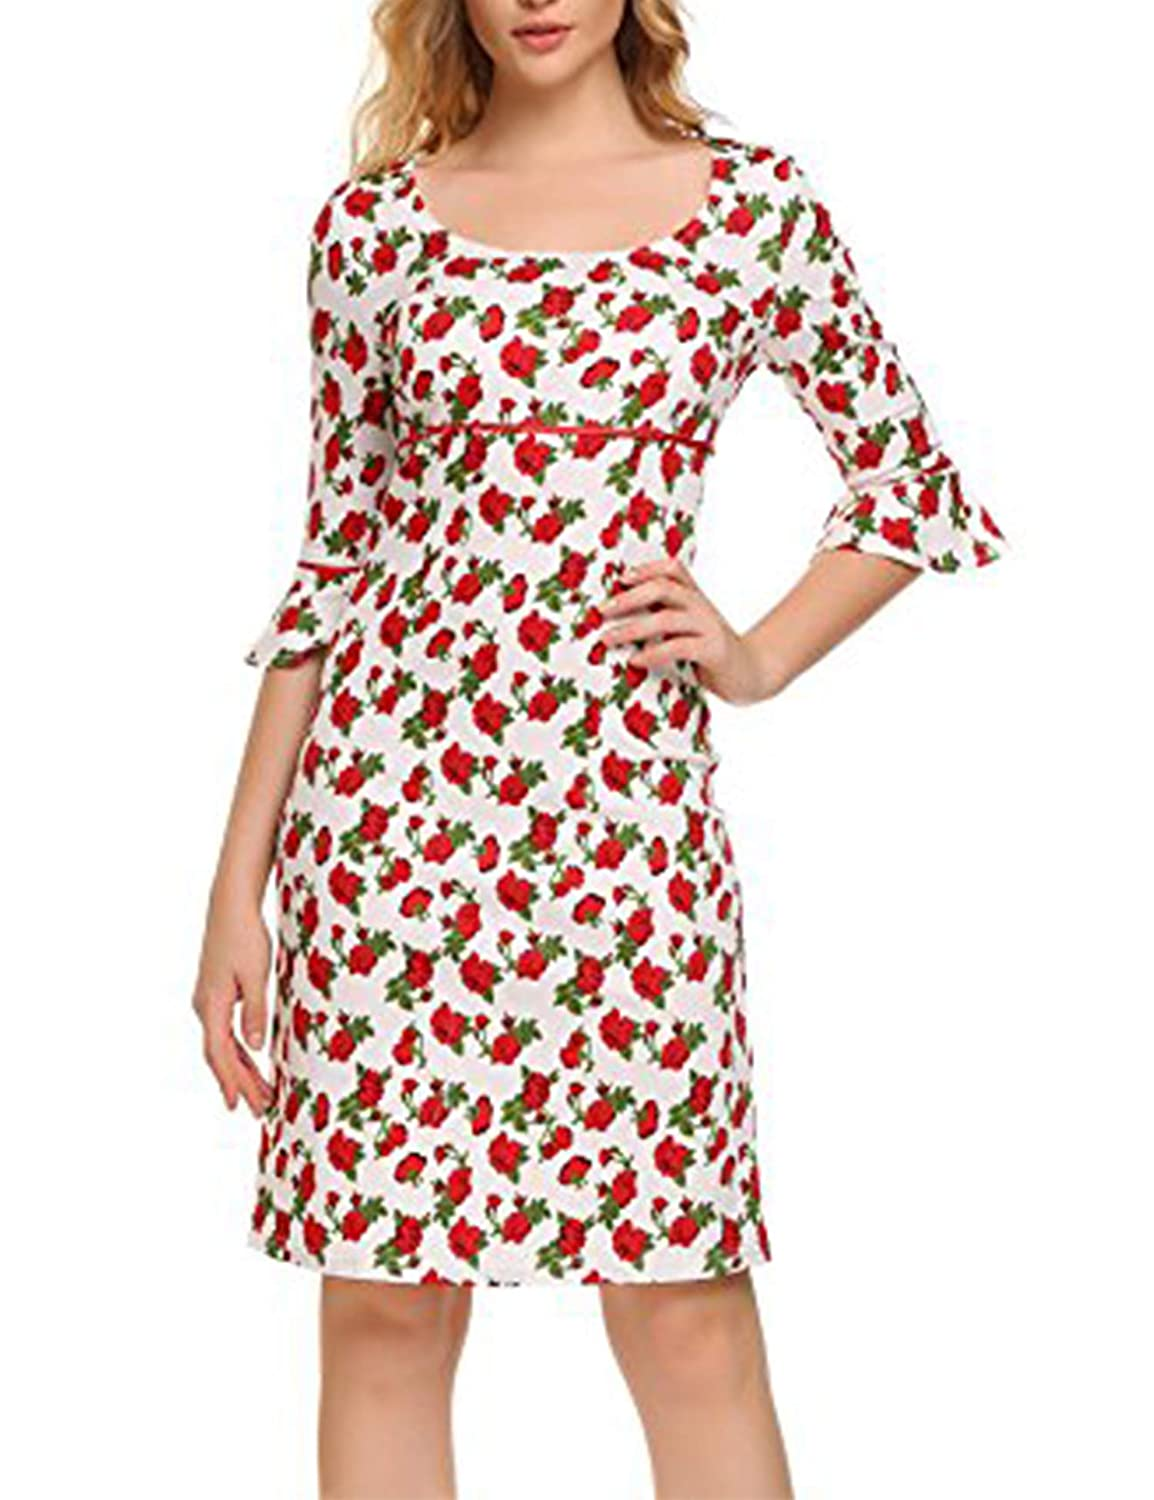 ACEVOG Women's Vintage Floral Flare Sleeve Cocktail Pencil Dress FASRET-ACEVOG AVH016035_PW_L*